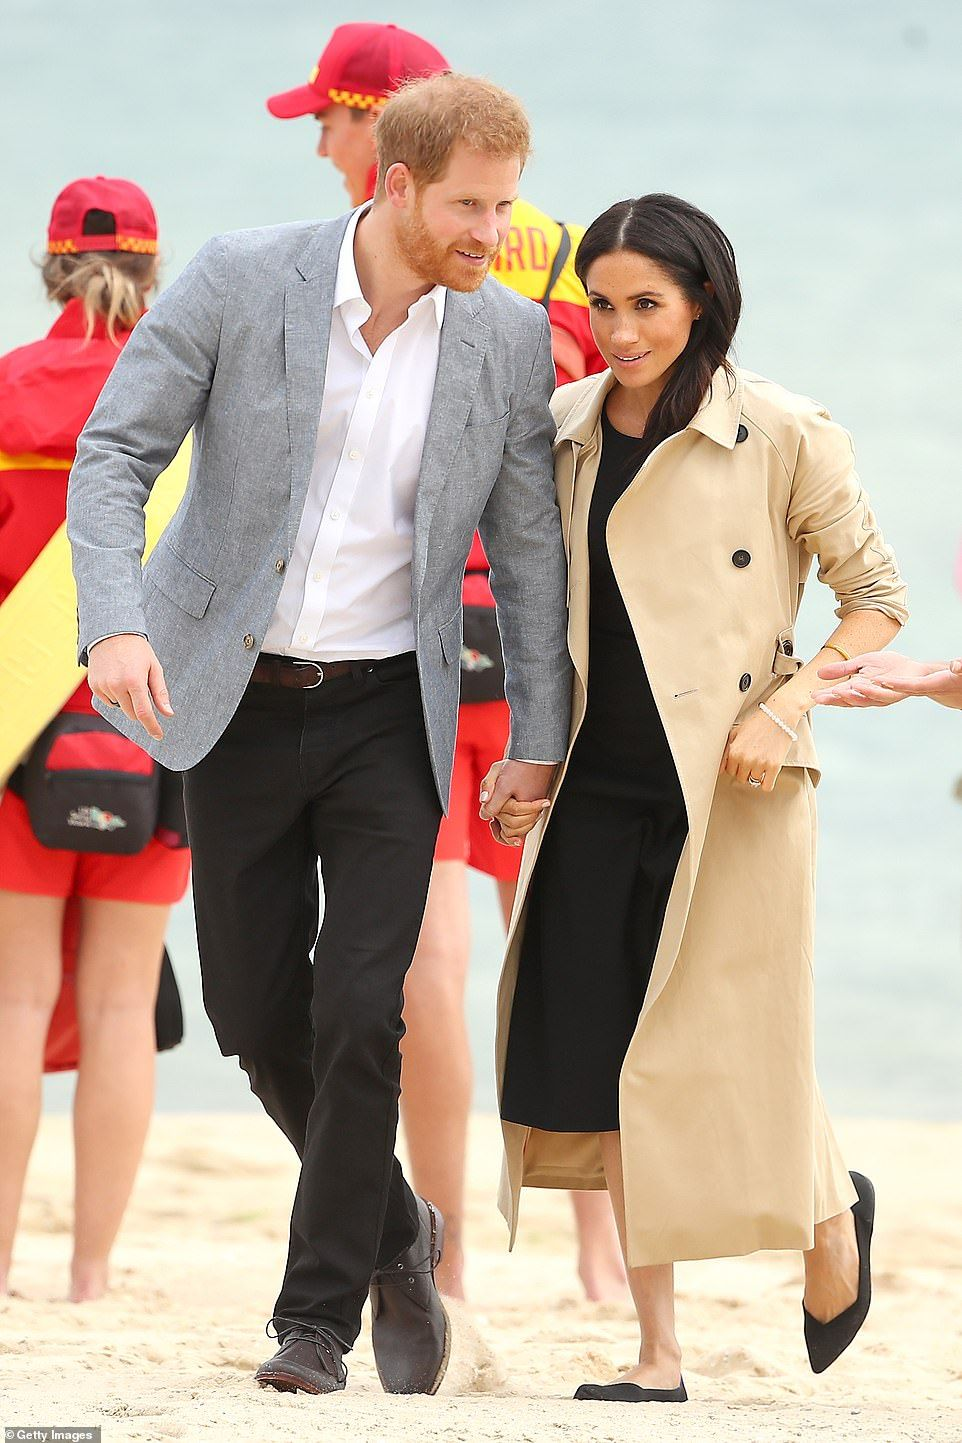 Meghan Markle Rocked Yet Another Pair Of Comfy Sneaks On The Royal Tour Meghan Markle Rocked Yet Another Pair Of Comfy Sneaks On The Royal Tour new pictures